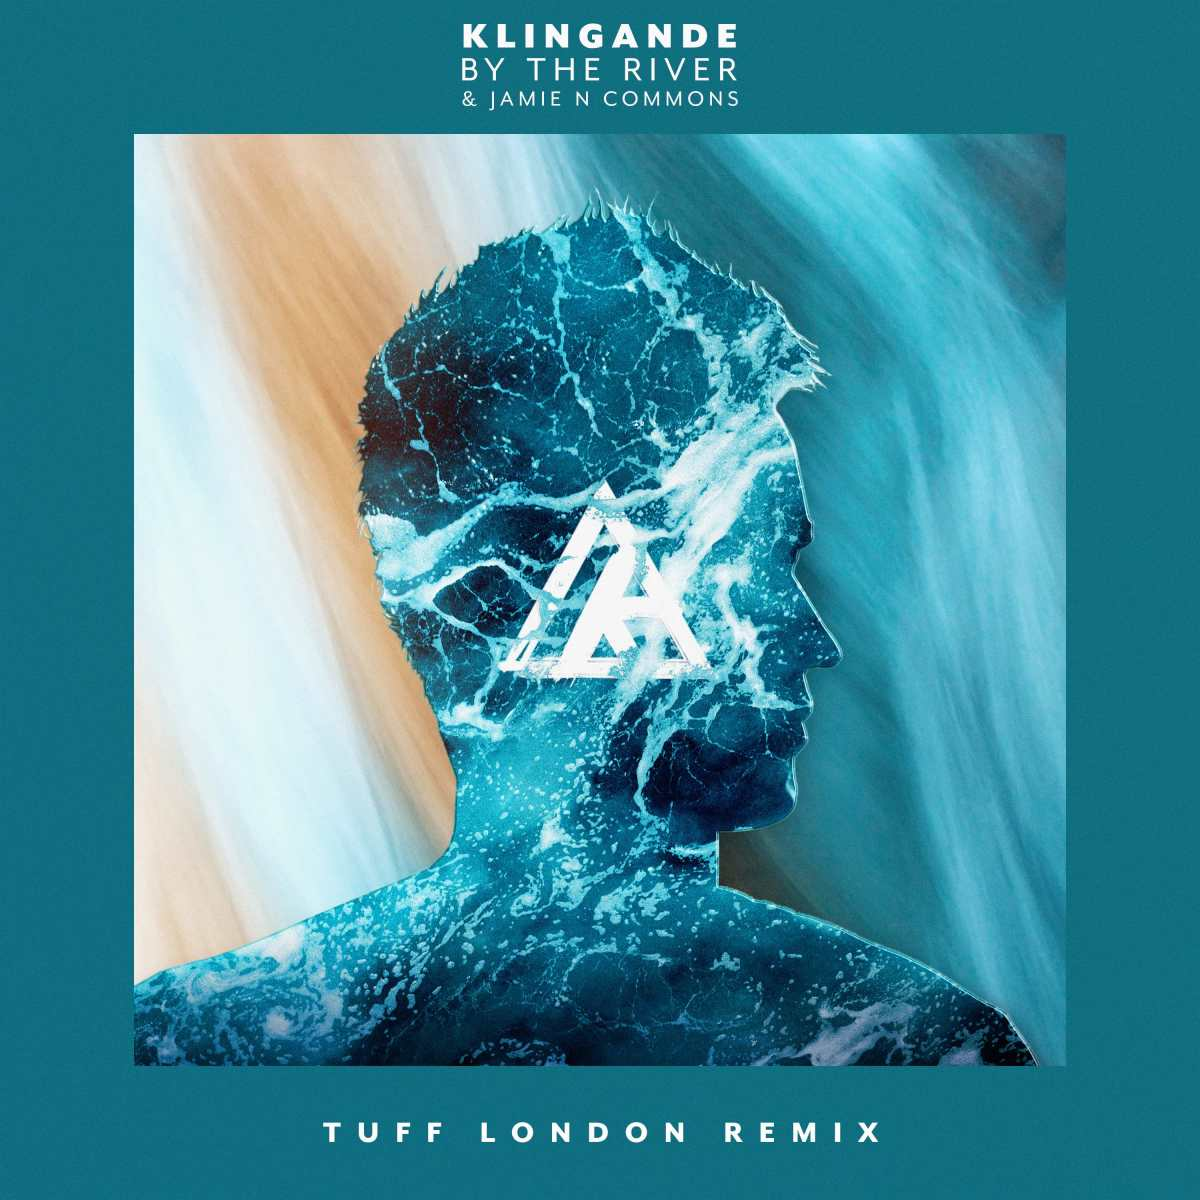 Klingande-By-The-River-Tuff-London-Remix